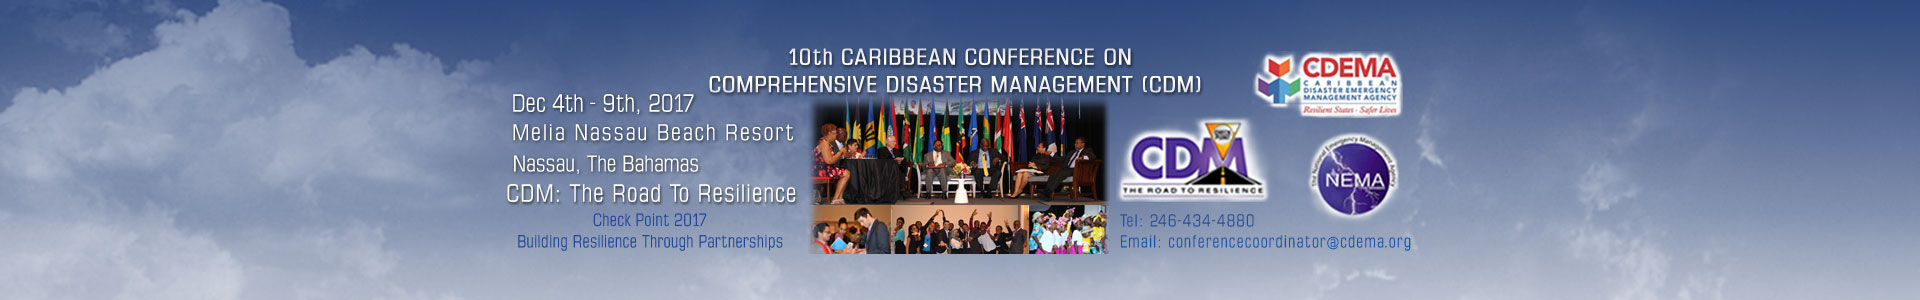 10th Caribbean Conference on Comprehensive Disaster Management